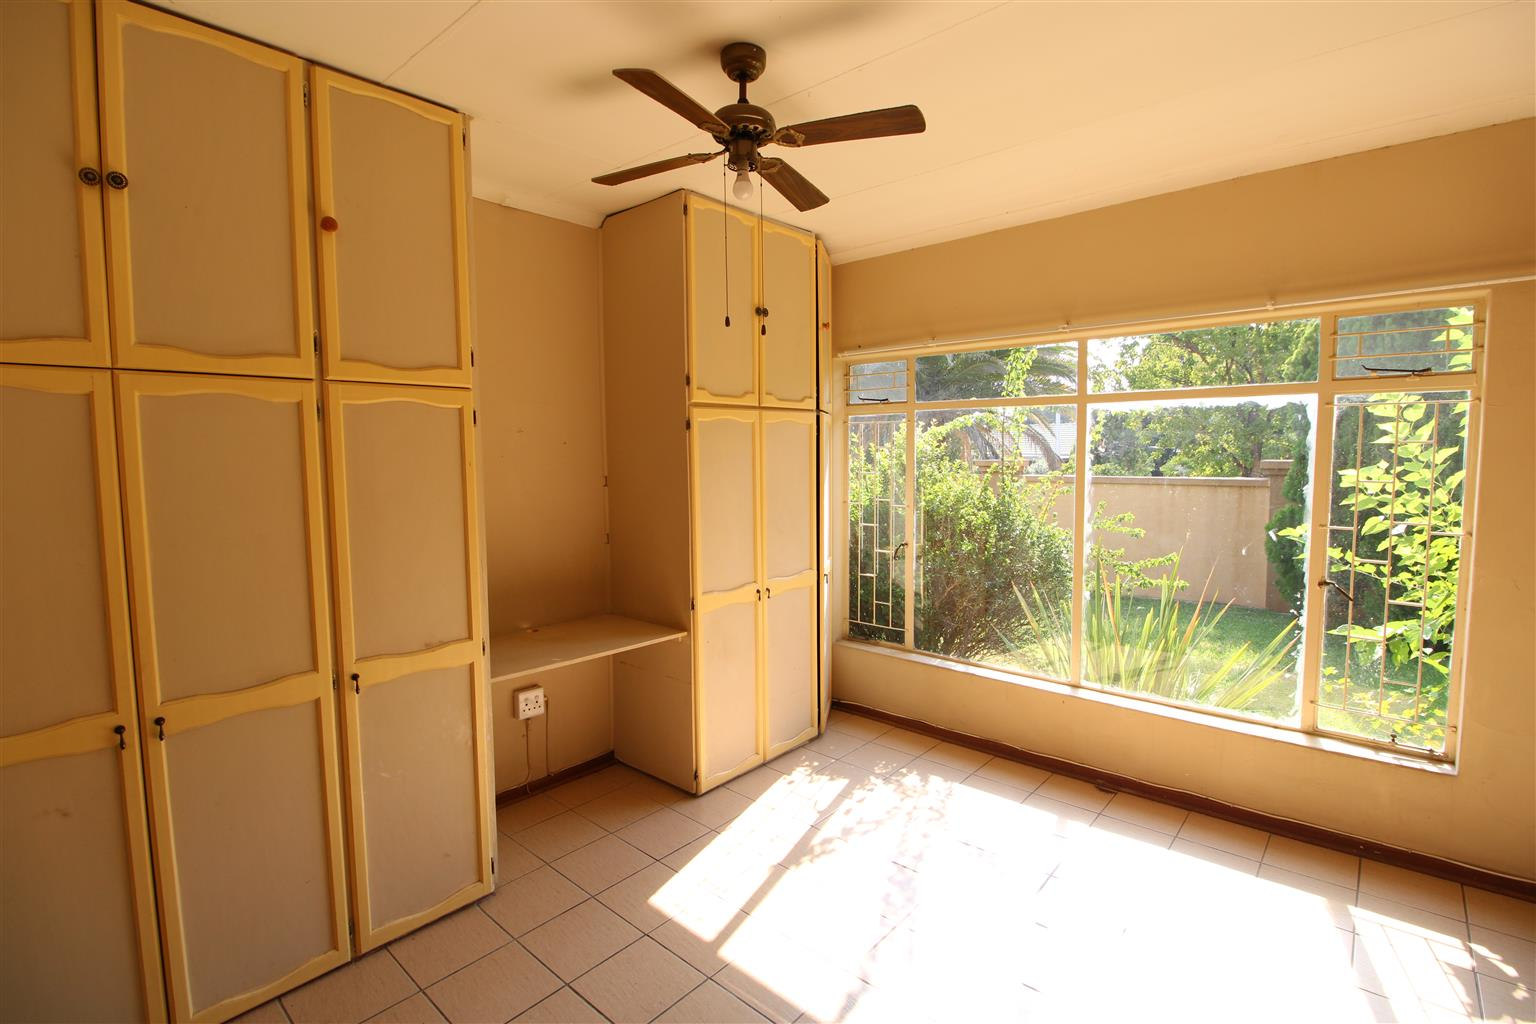 PRICE REDUCED - Large, great value for money Family Home in a Quiet Neighborhood